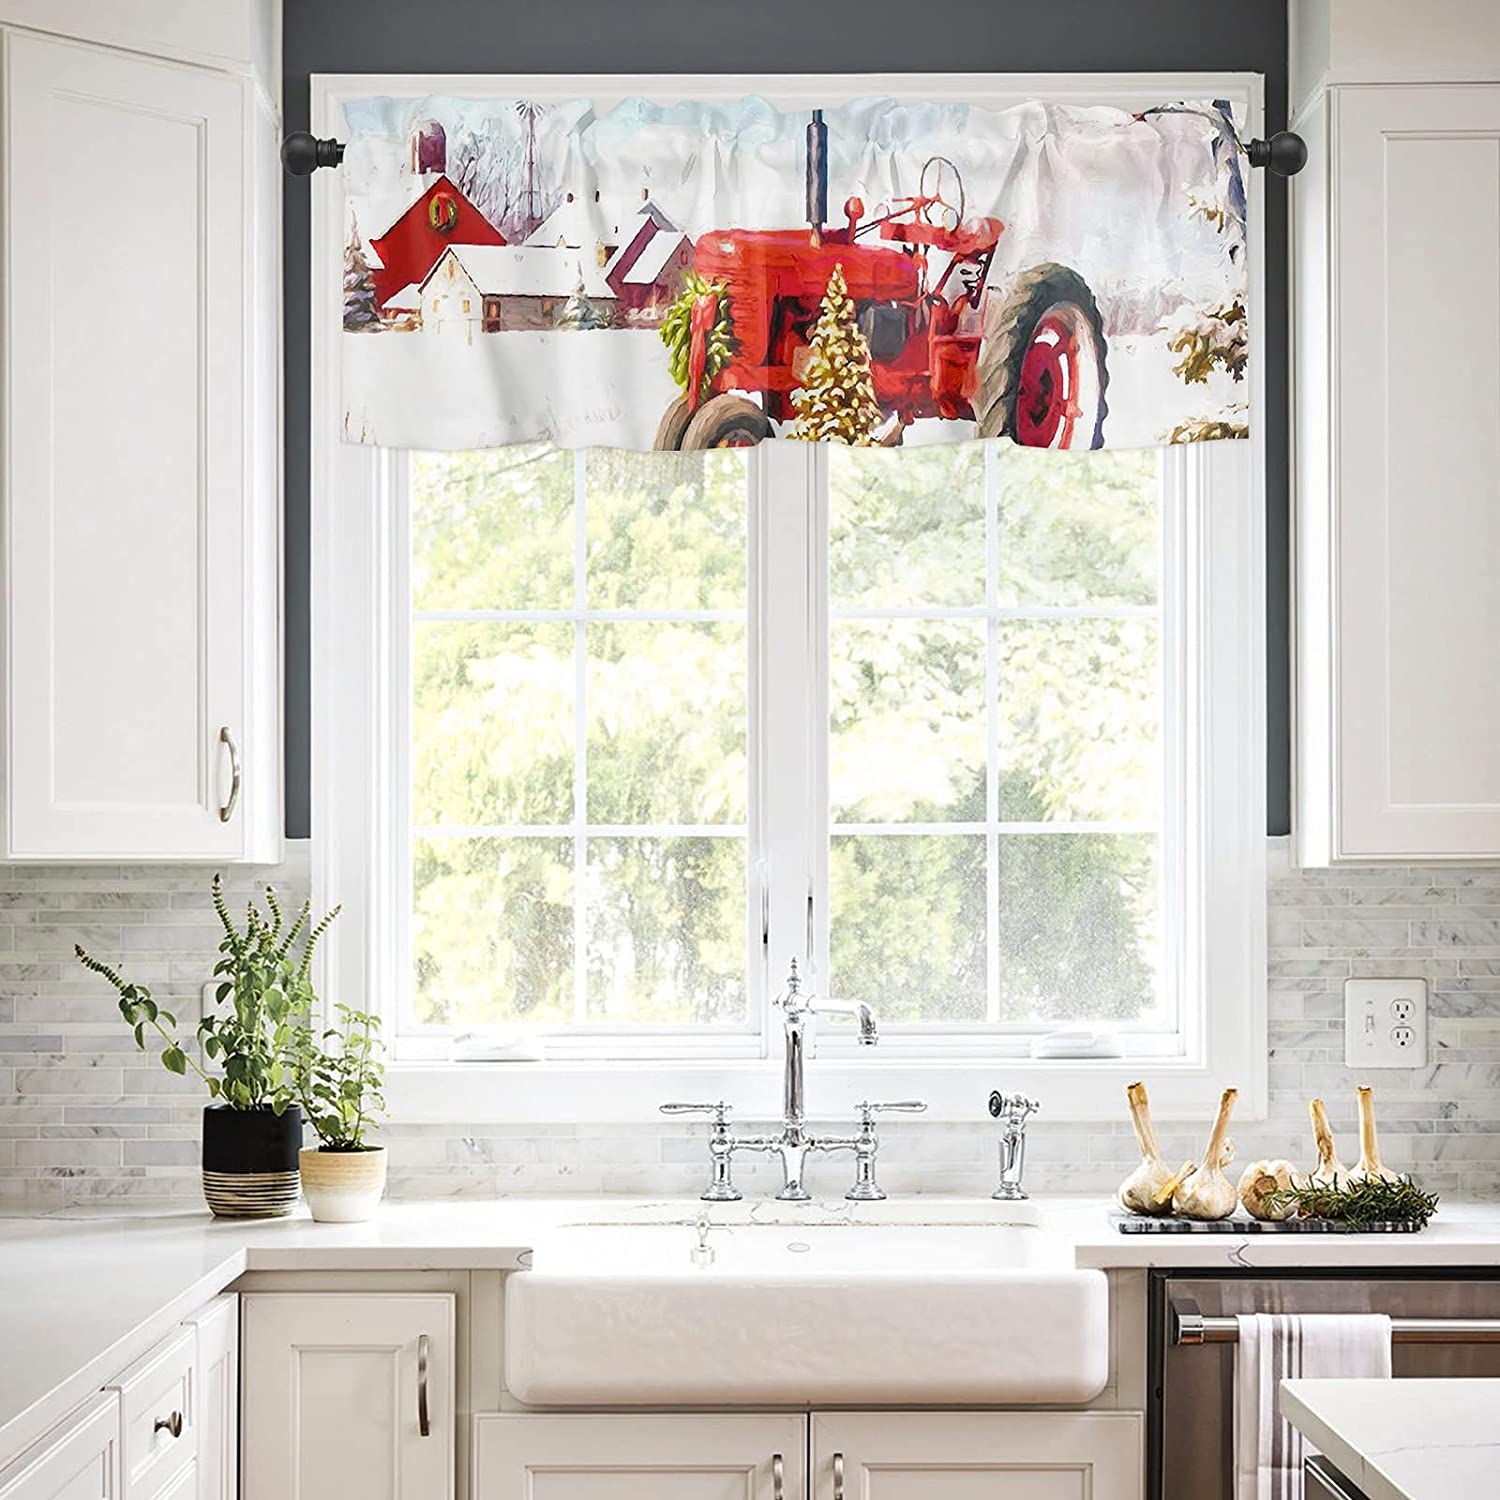 Rod Pocket Window Valances Curtains for Christmas Kitchen R Tree Our shop most Popular brand popular